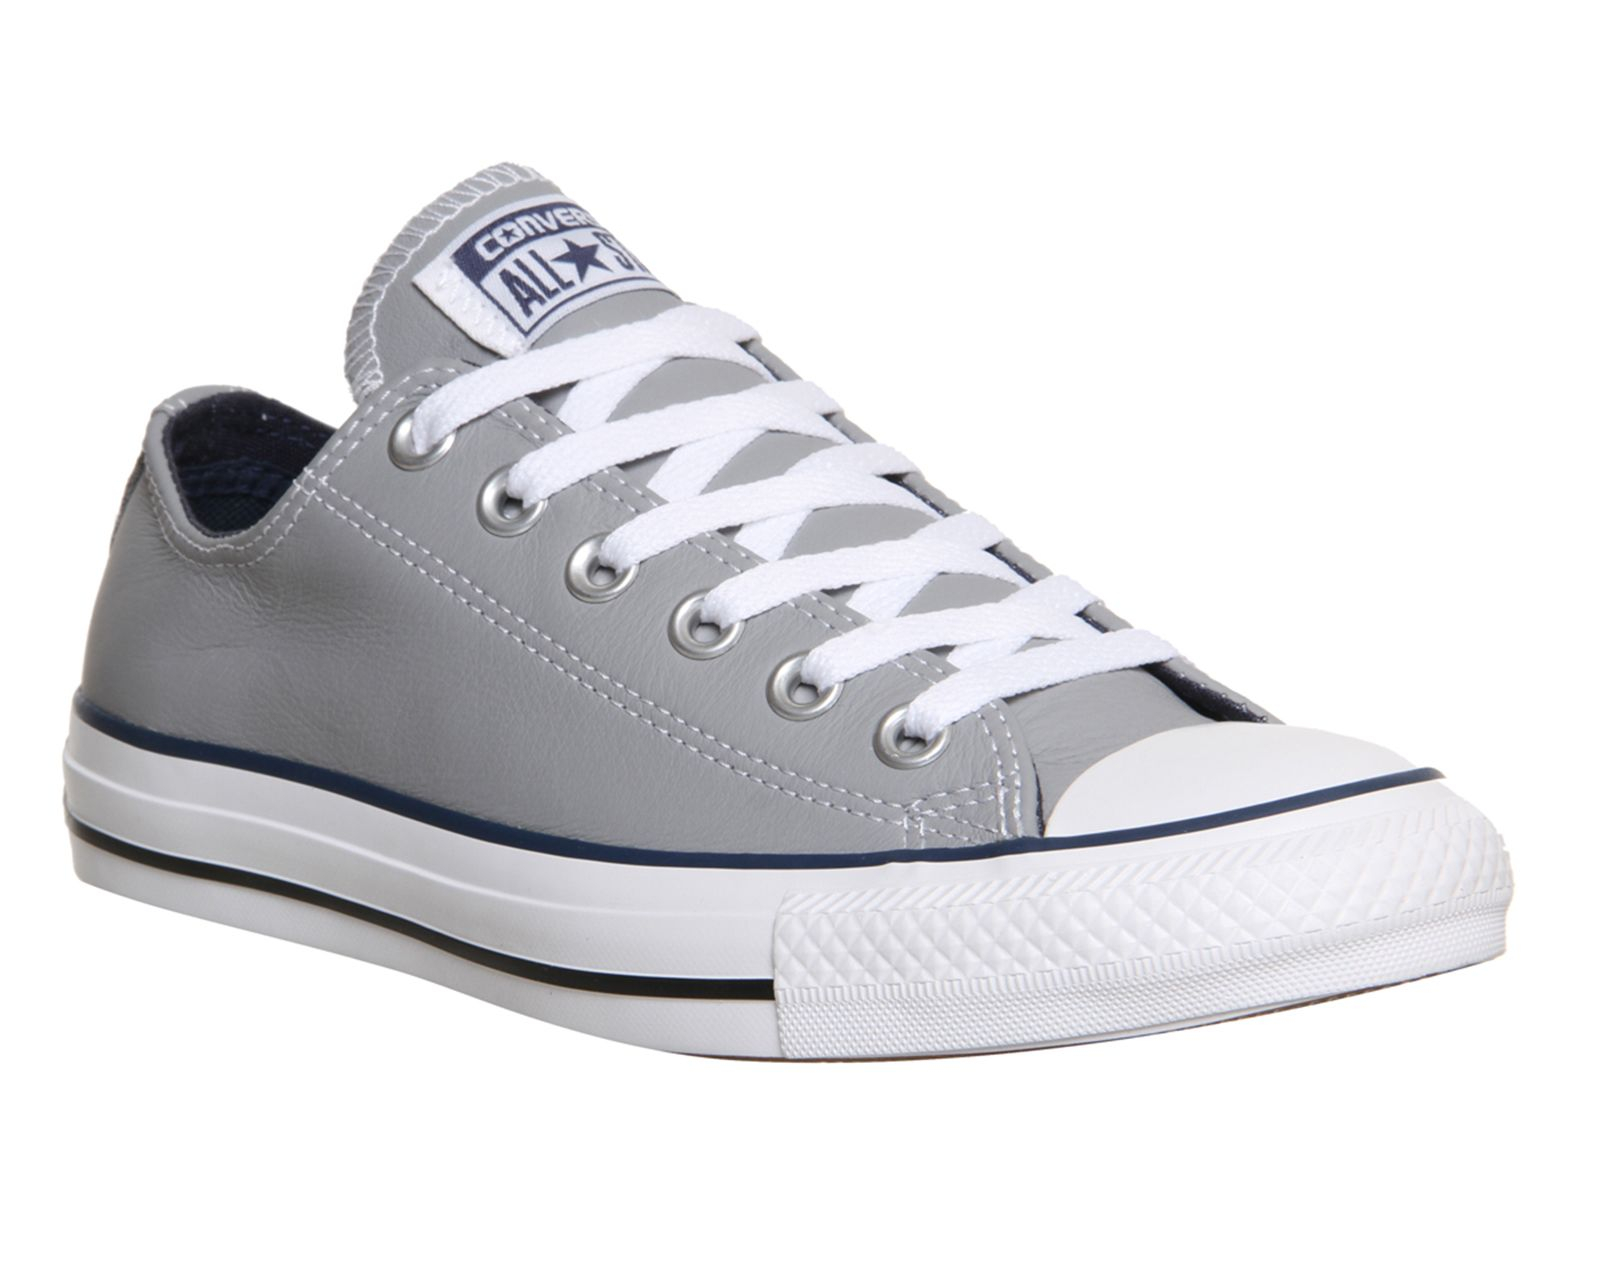 Converse allstar low leather trainer in gray grey lyst - Graue converse ...